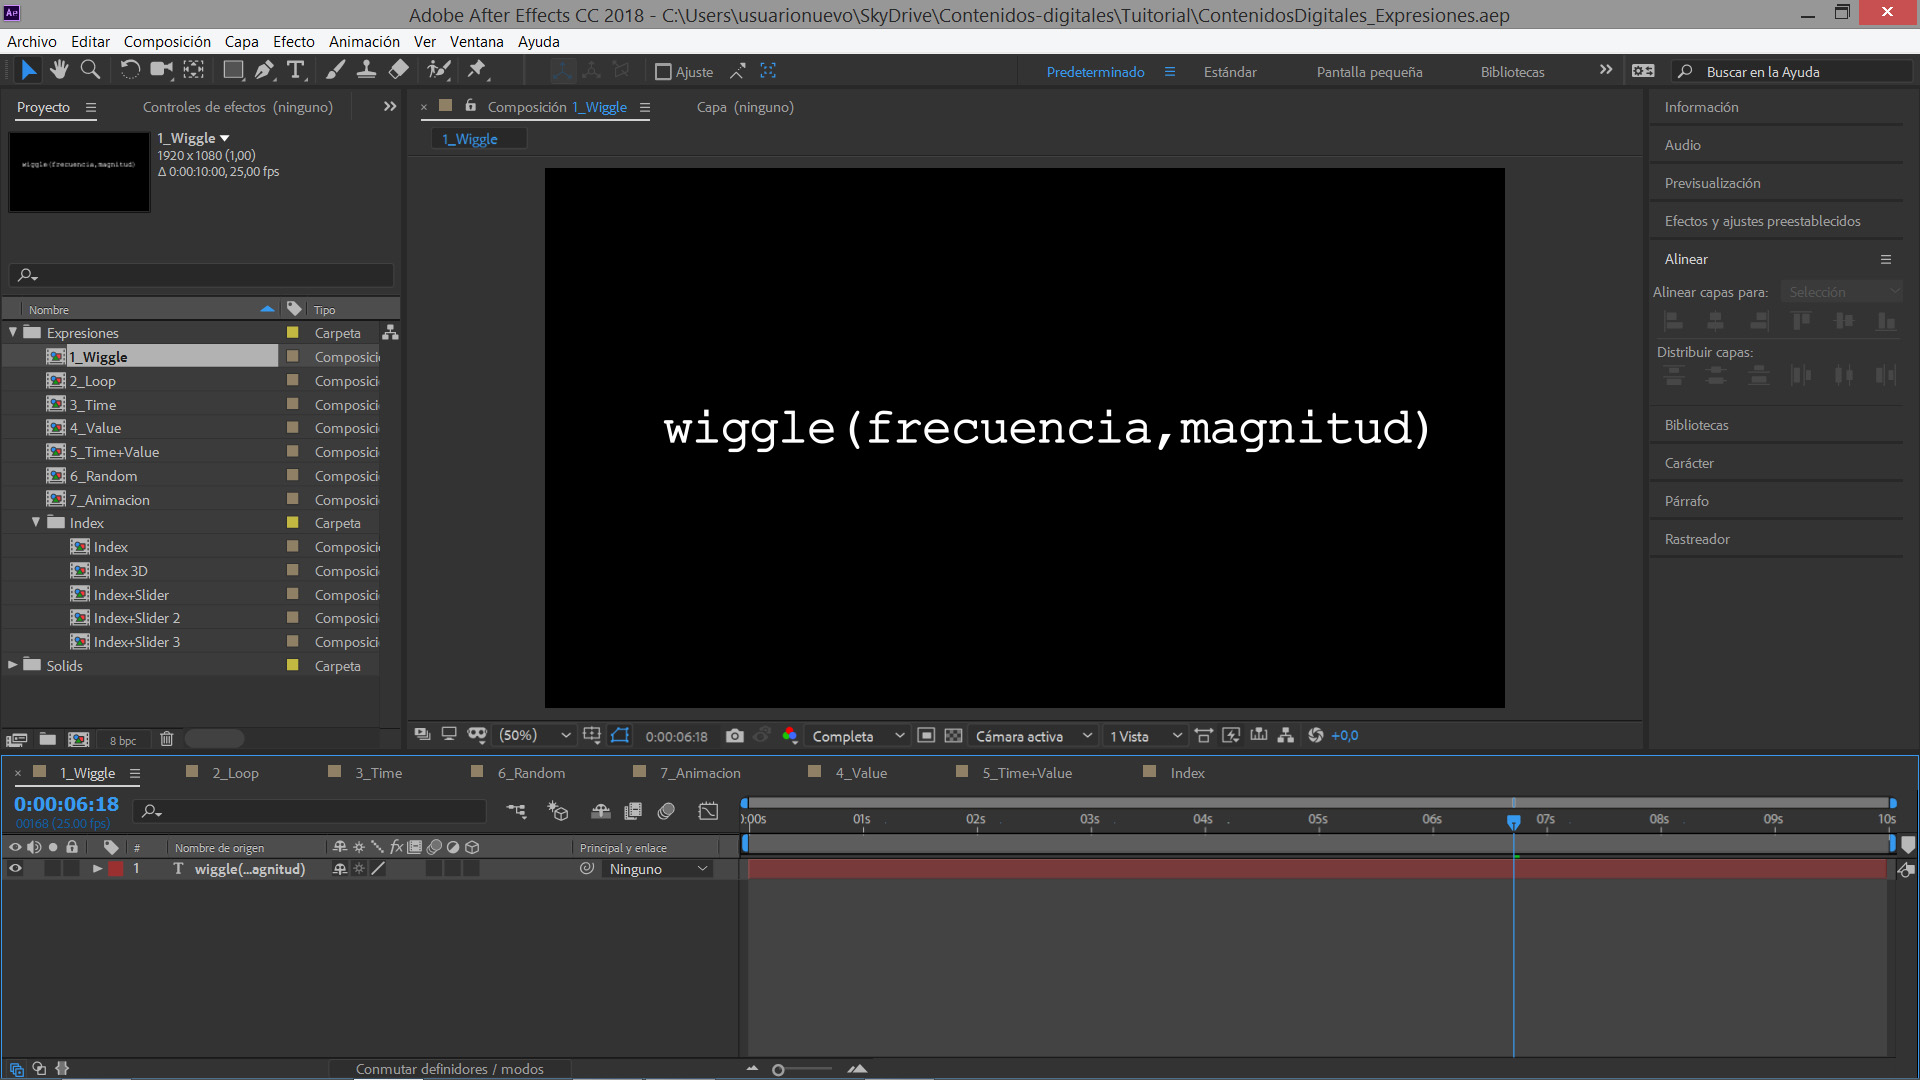 #TUITORIAL | Expresiones en Adobe After Effects